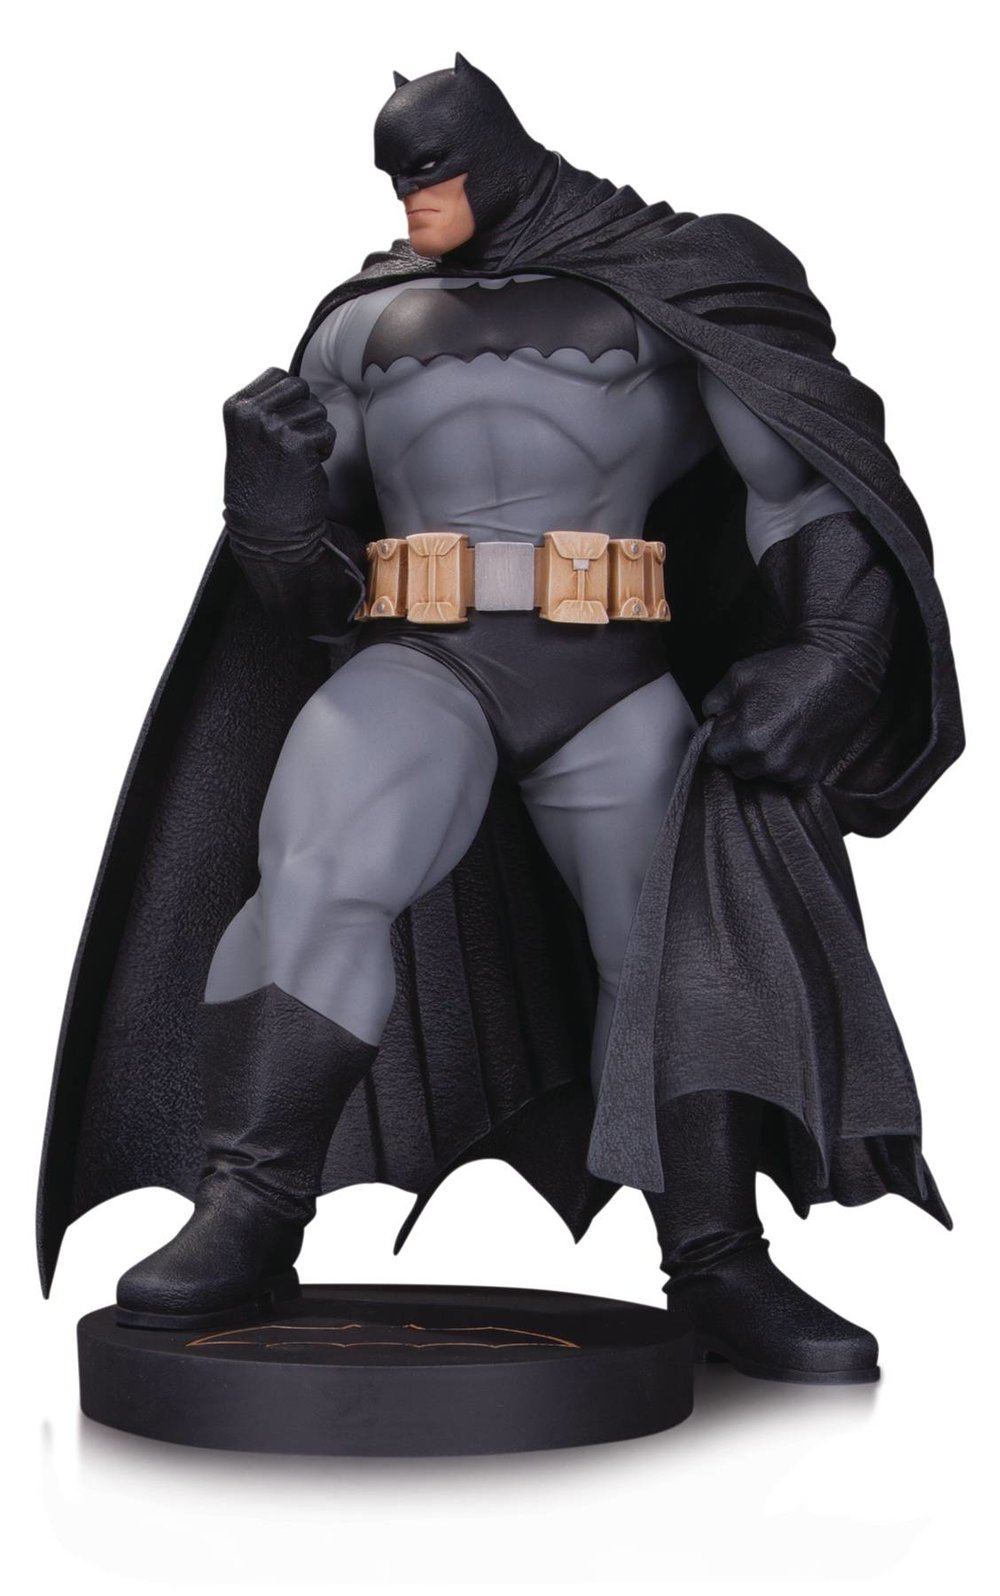 DC DESIGNER SER BATMAN BY ANDY KUBERT MINI STATUE.jpg